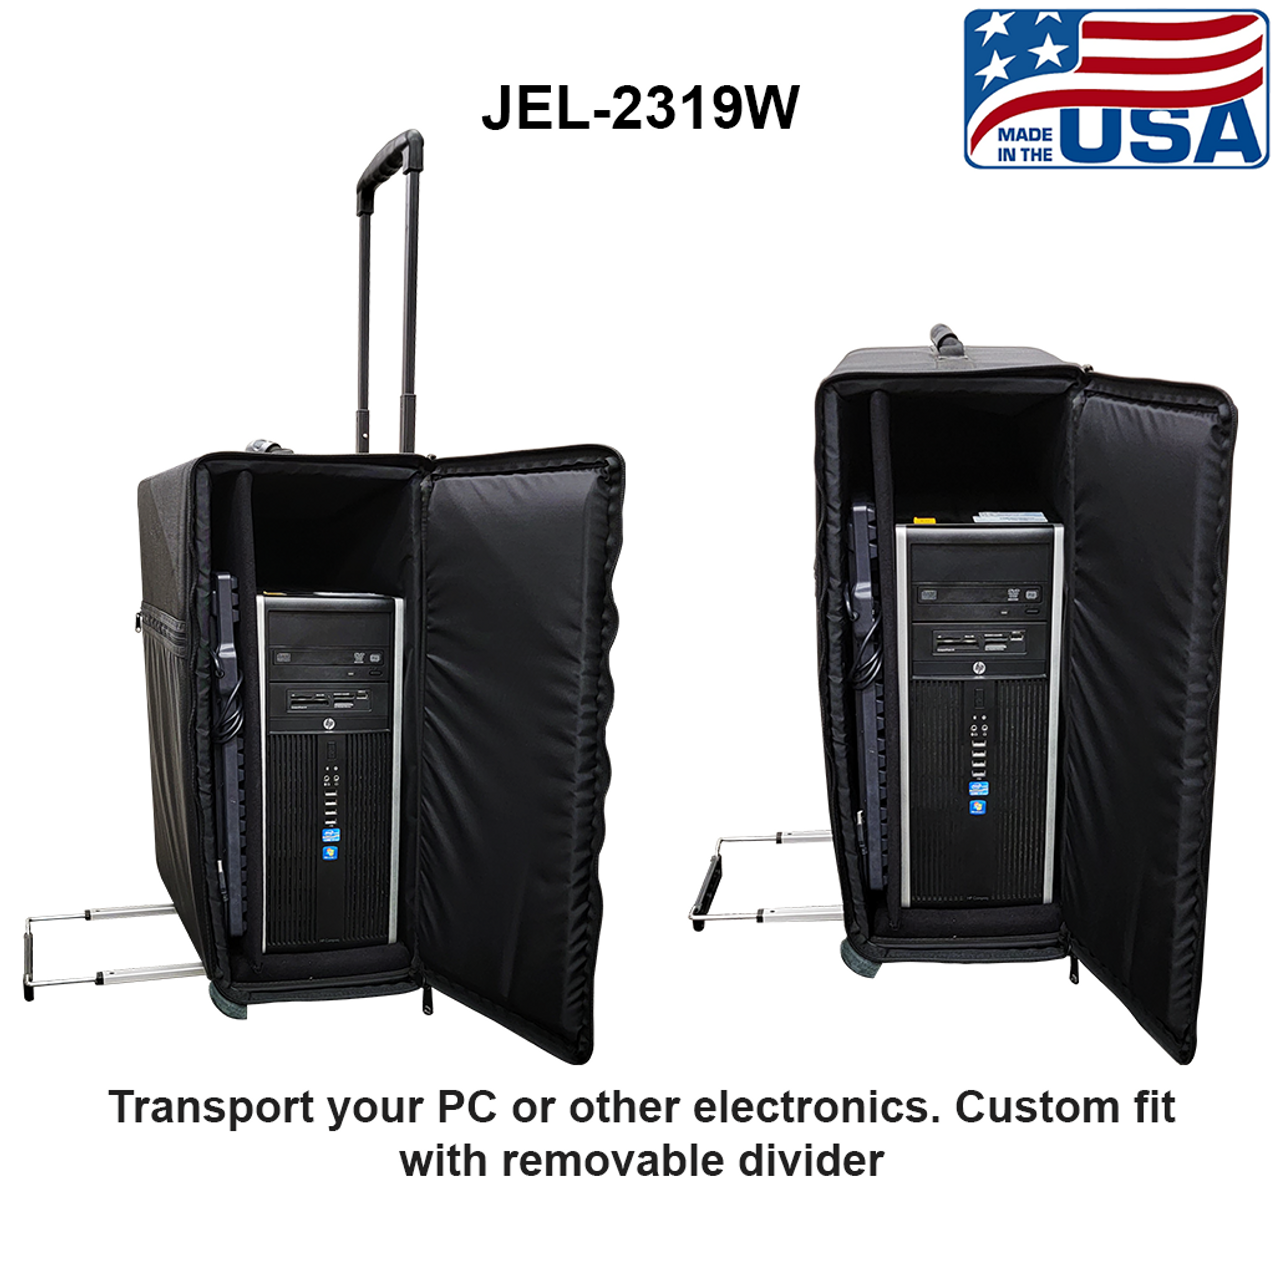 Wheeled bag with extension pull handle. Side loading for electronics